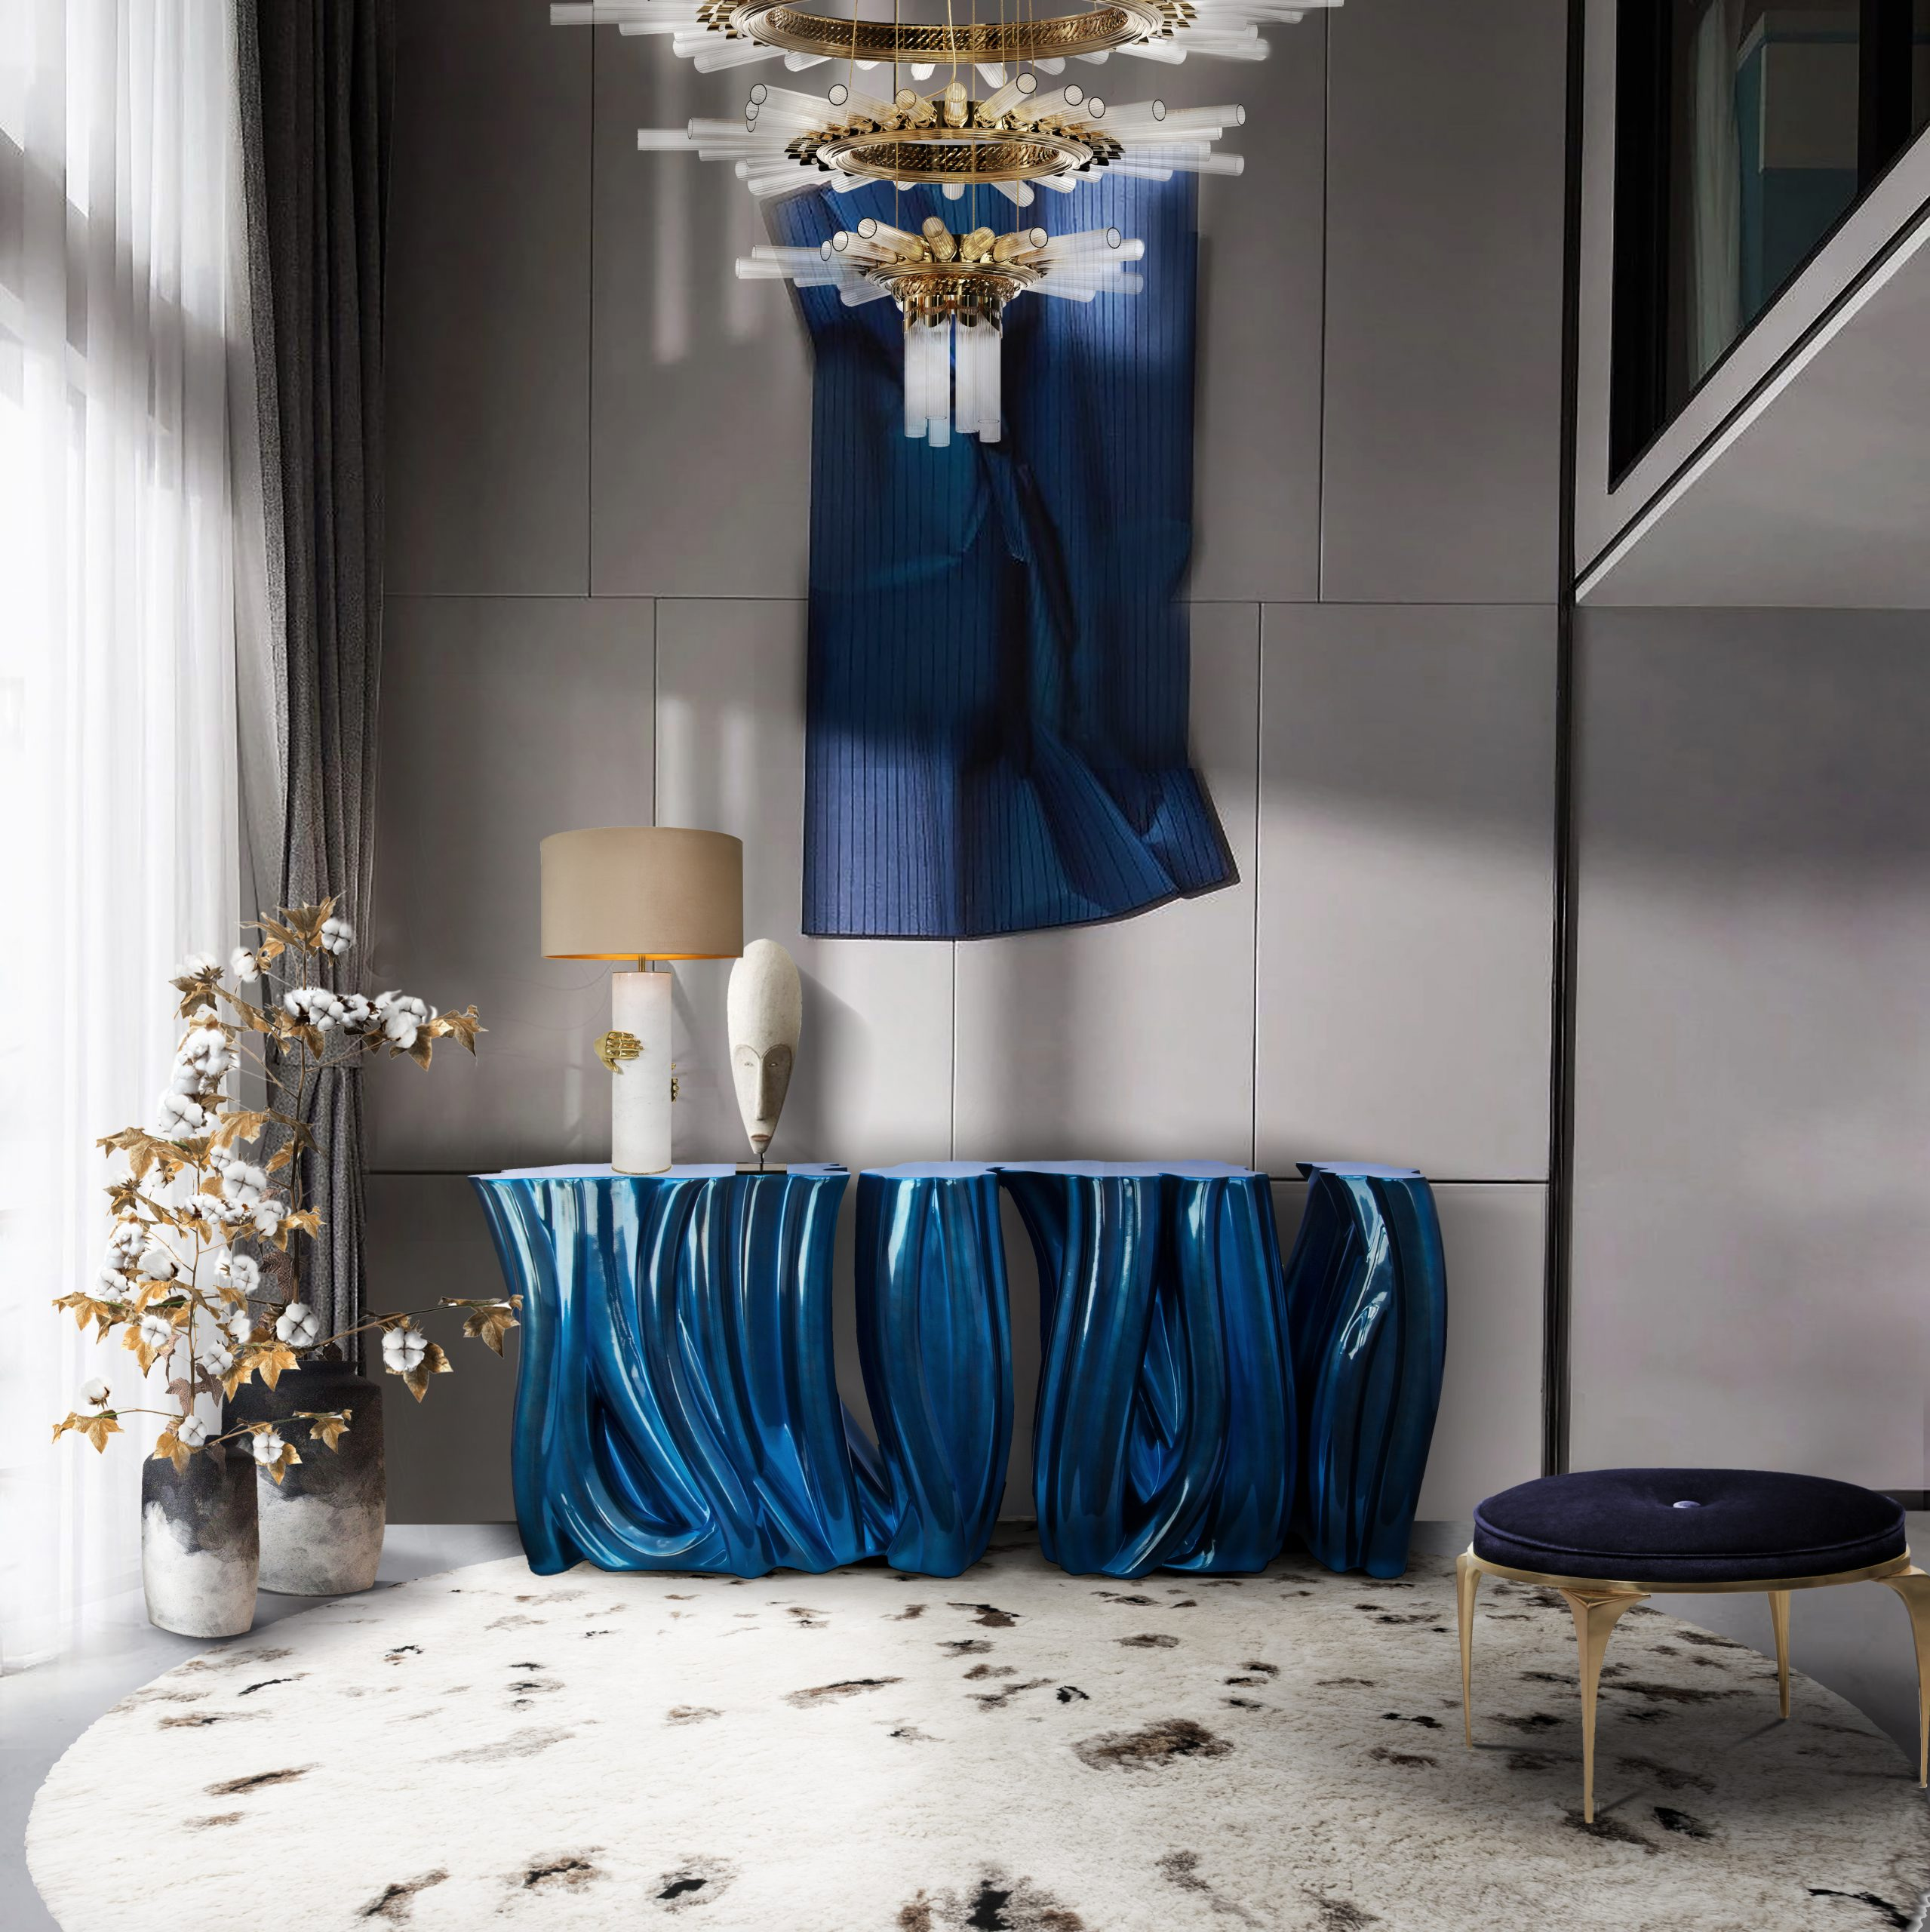 Color Trends That Will Brighten Your Home Design Pantone Colors of 2018 The Pantone Colors of 2018 you Can Find at iSaloni Milano 2017 majestic chandelier 02 scaled Pantone Colors of 2018 The Pantone Colors of 2018 you Can Find at iSaloni Milano 2017 majestic chandelier 02 scaled